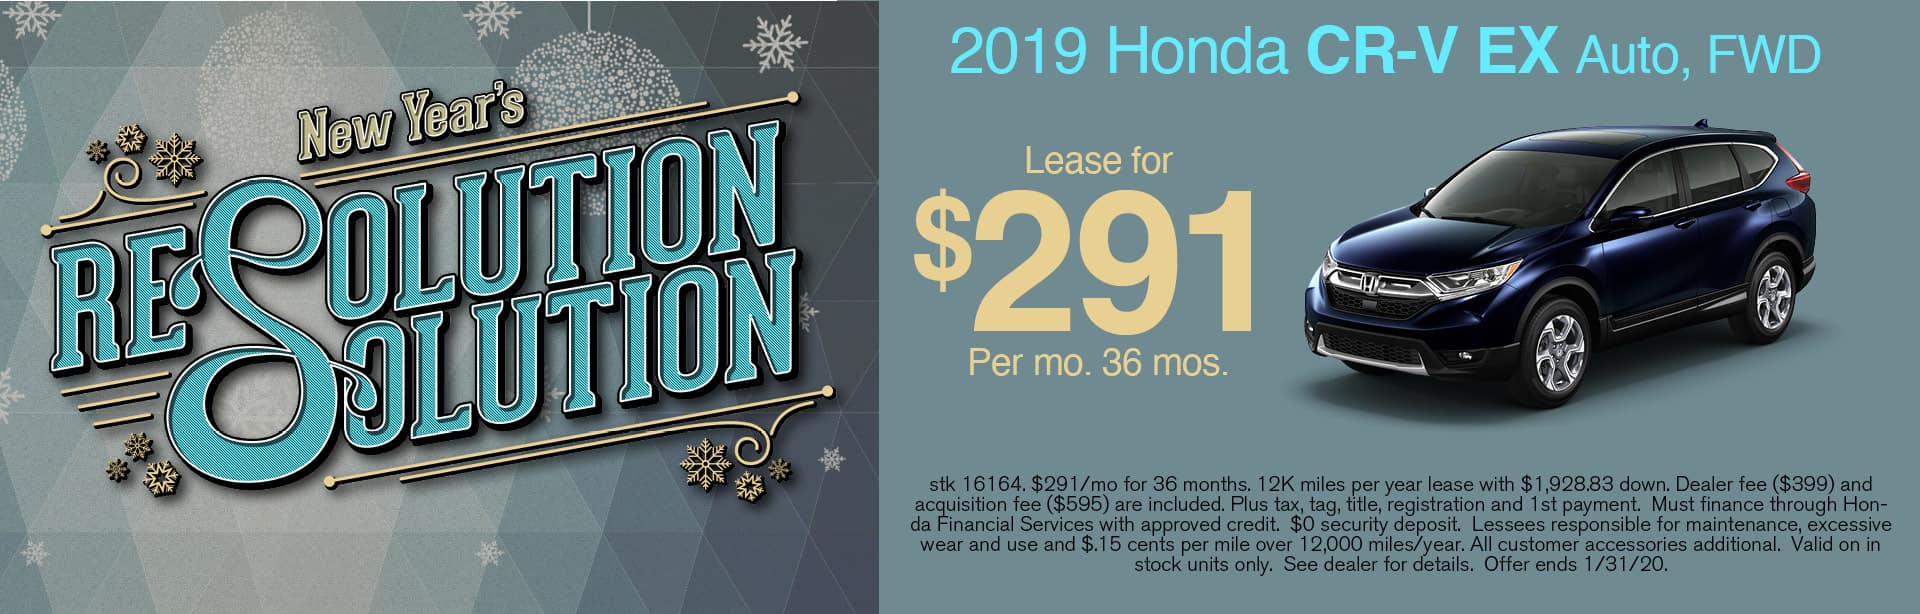 Stokes Honda Beaufort >> Stokes Honda Cars Of Beaufort Honda Dealer Serving Hilton